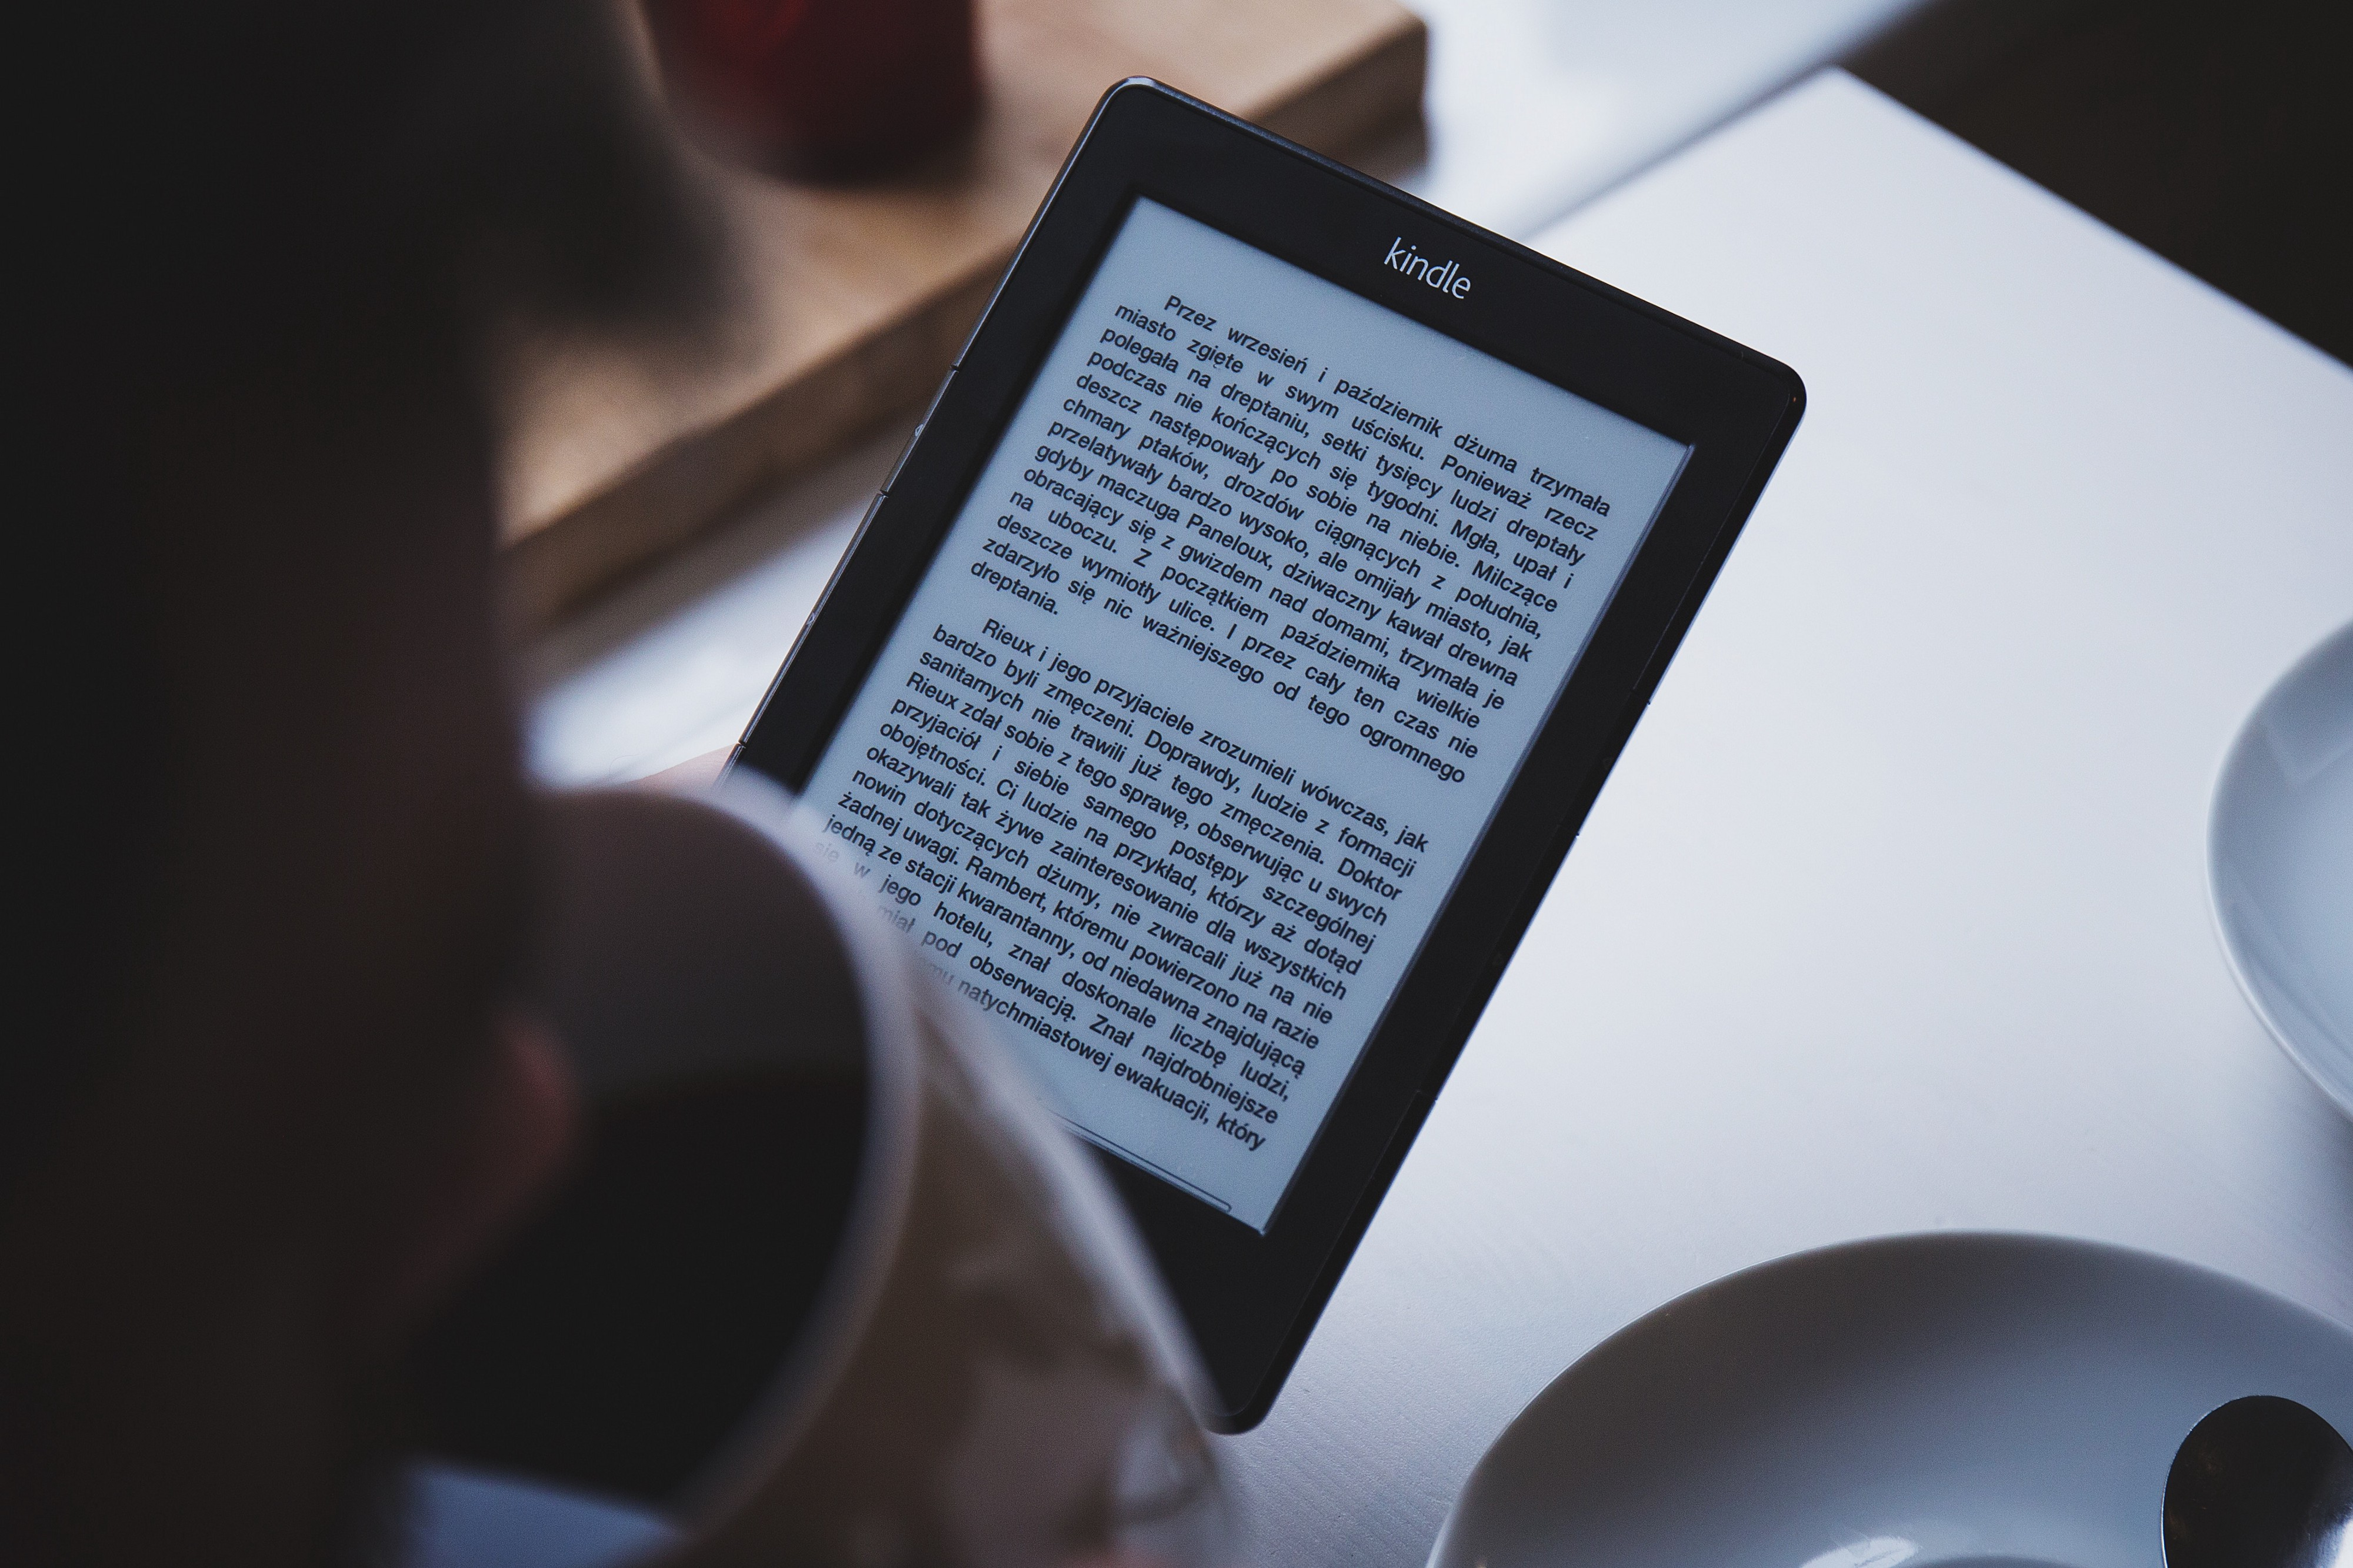 Can ebook piracy be prevented (or even just managed)?